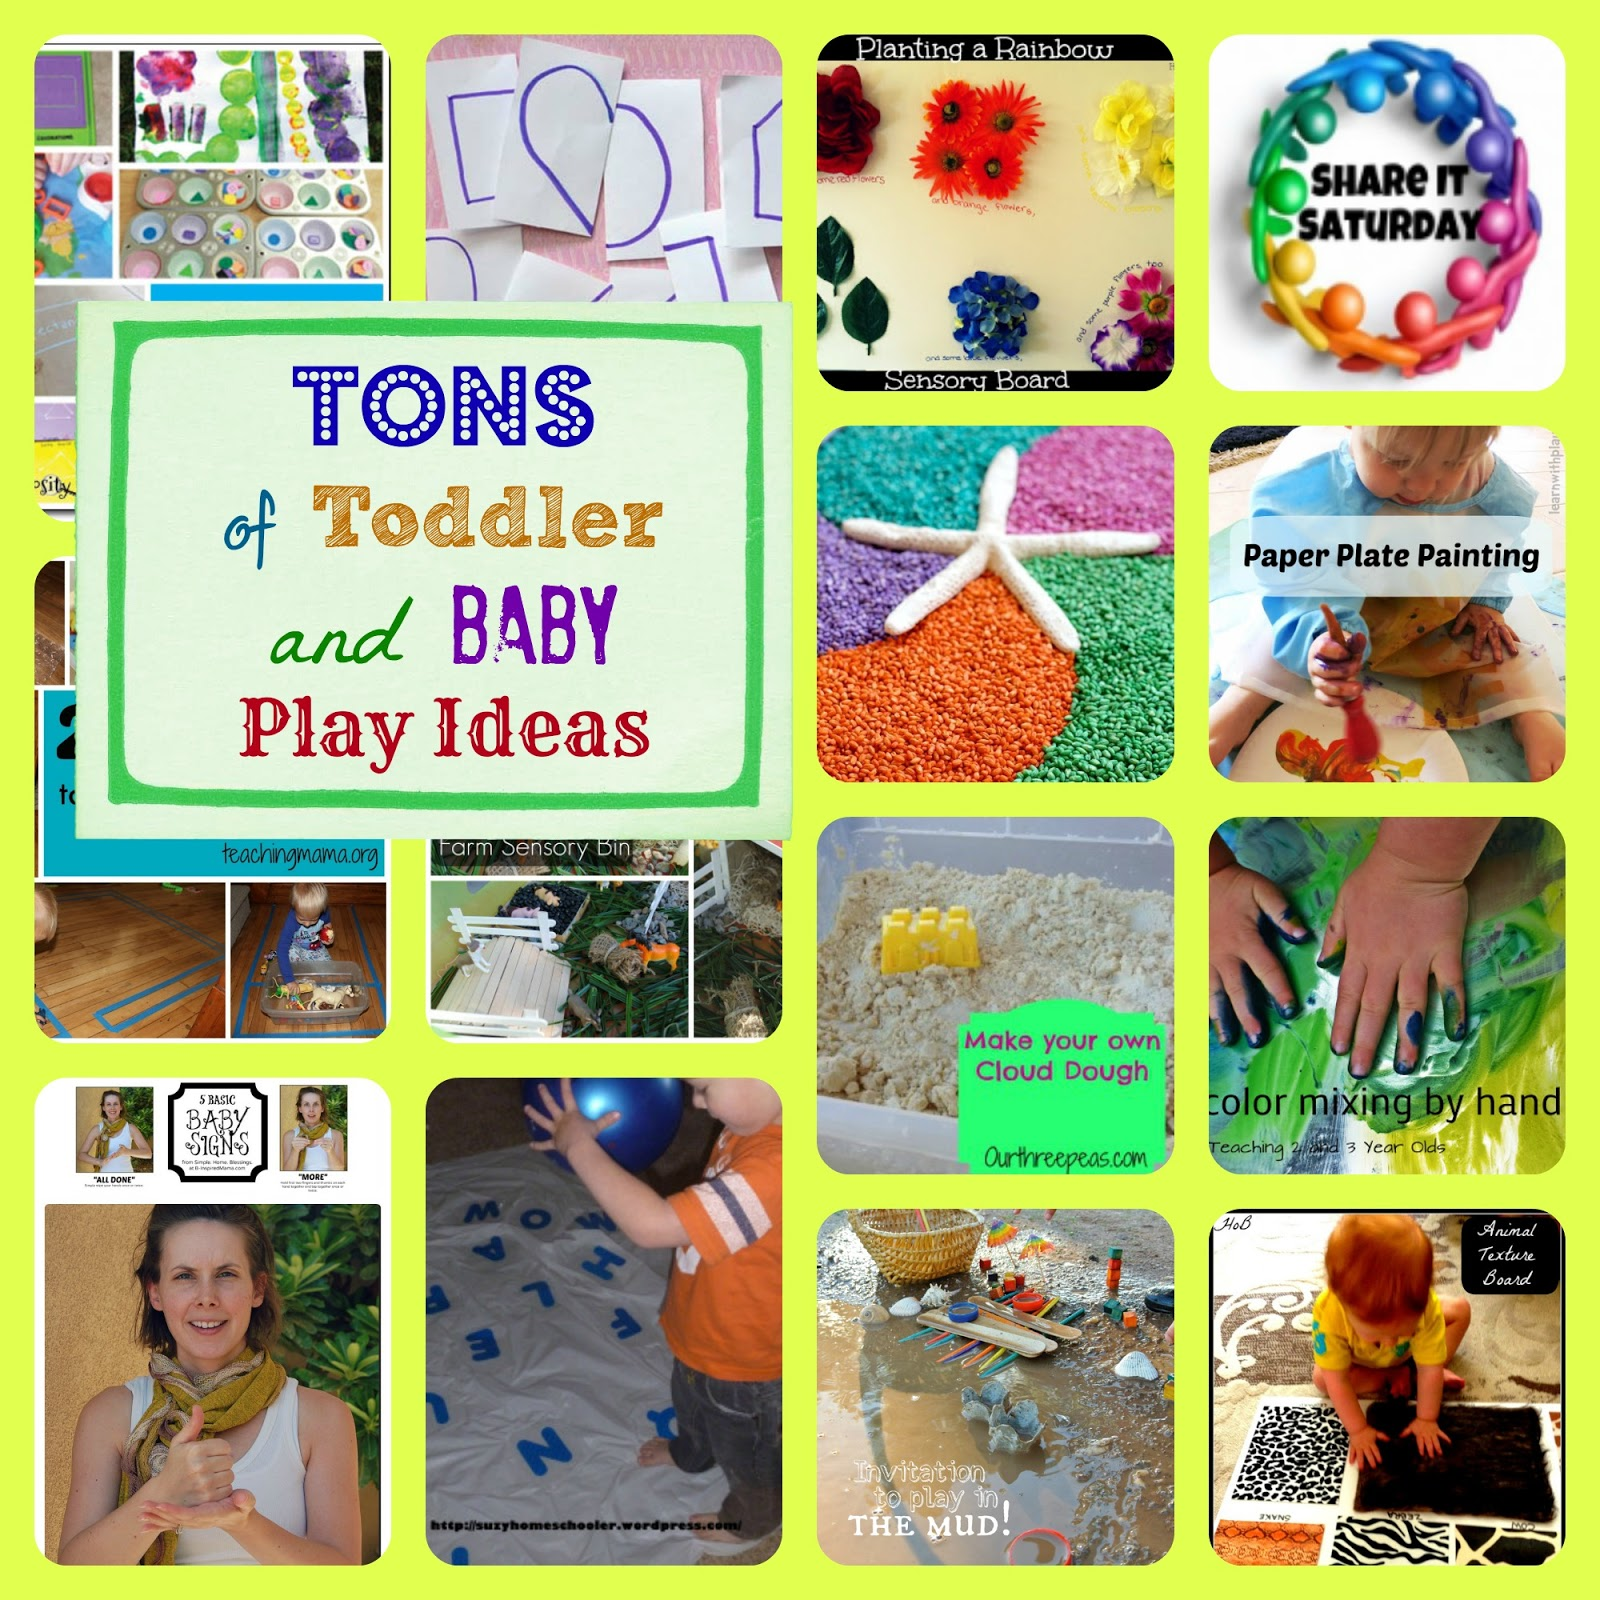 Family Photo Ideas With Baby And Toddler 20 ways to keep toddlers busyFamily Photo Ideas With Baby